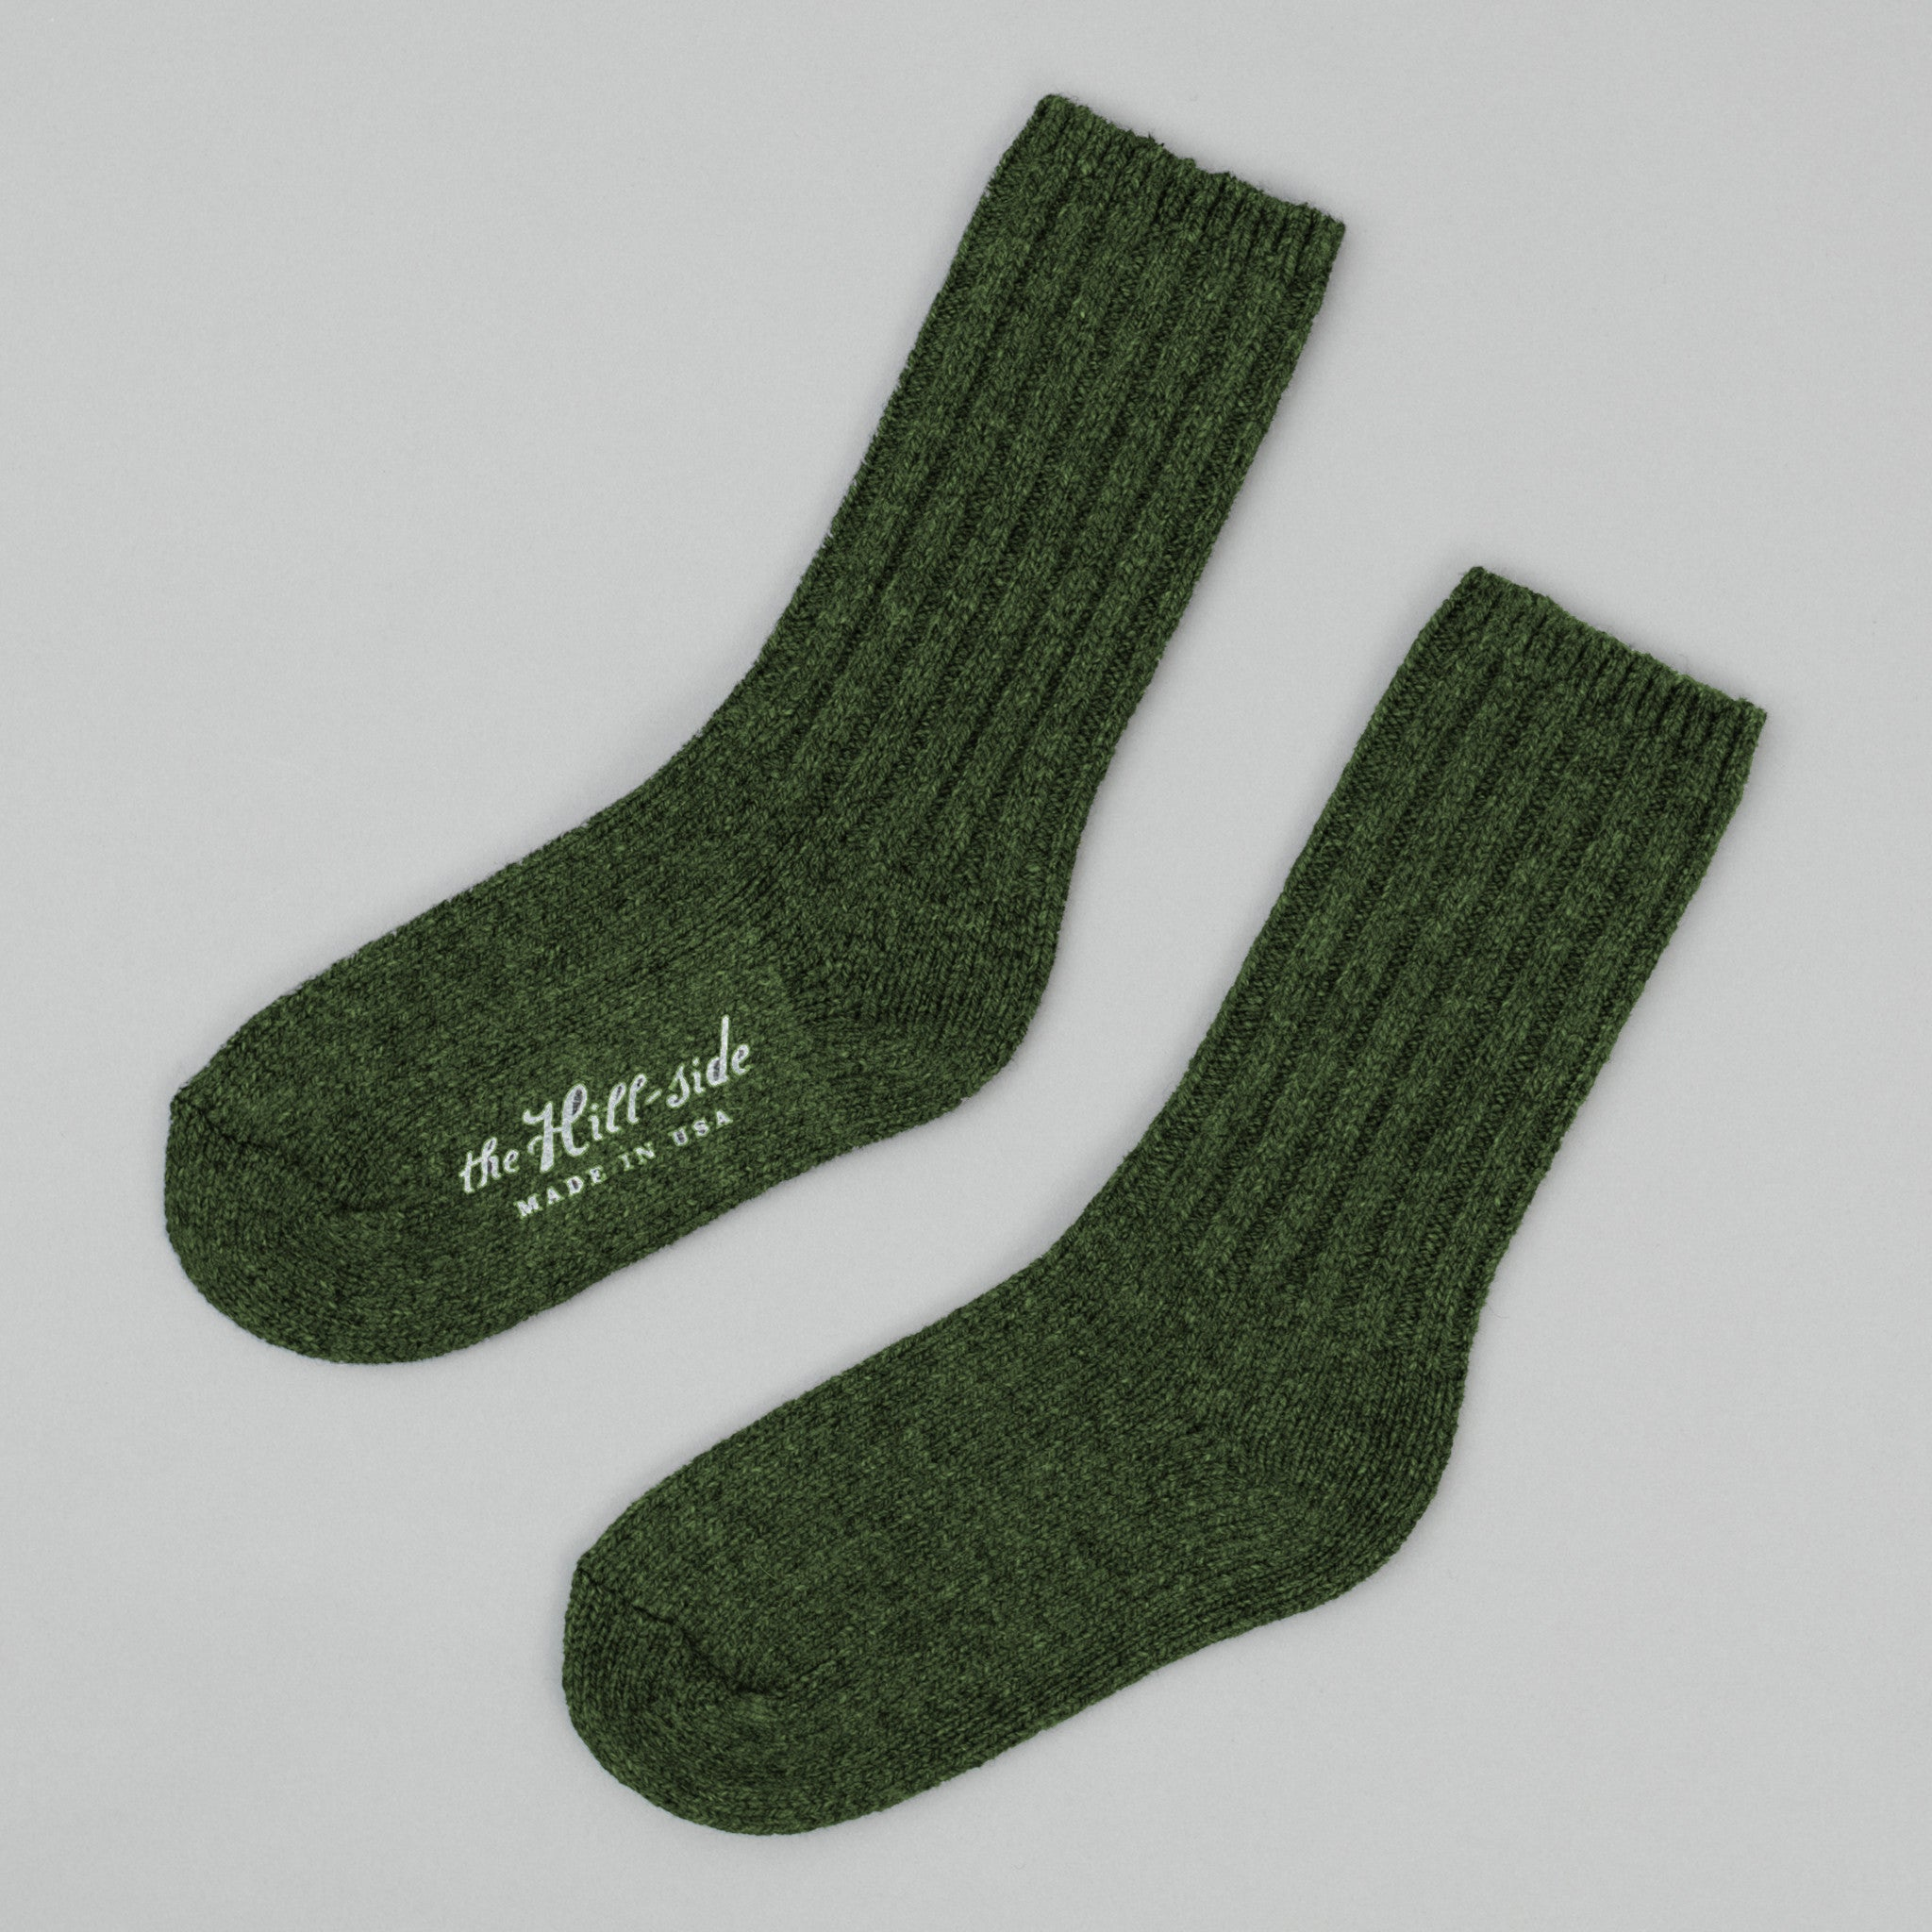 The Hill-Side - Merino Wool Ragg Socks, Forest Green - SX5-05